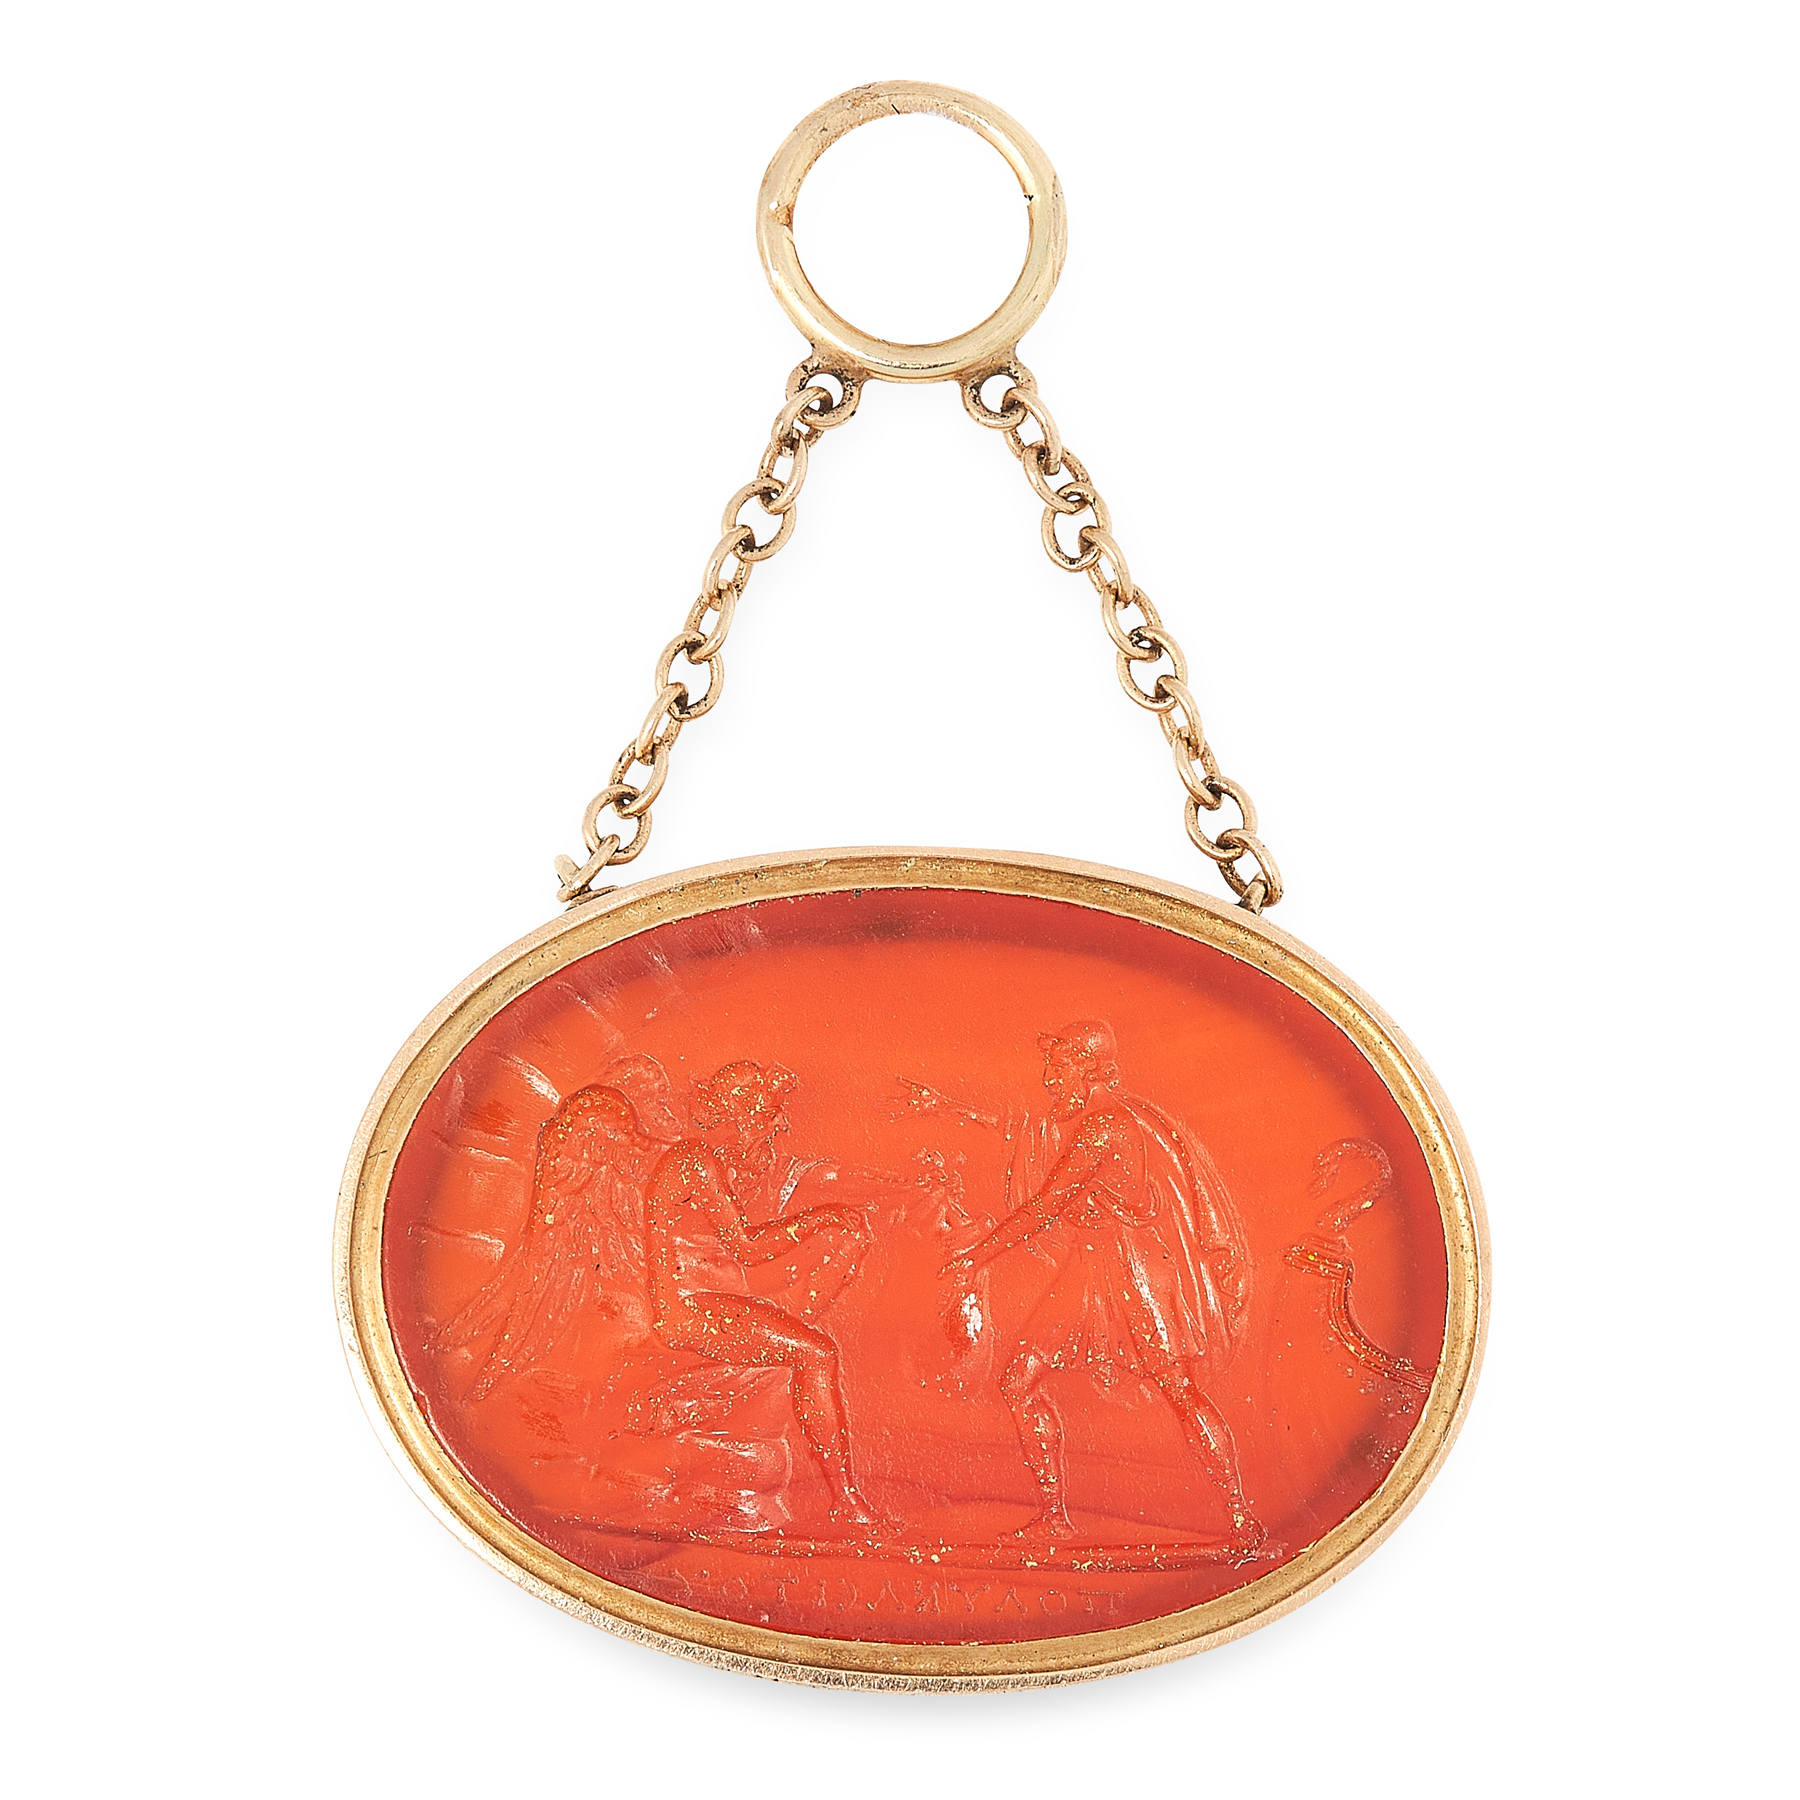 AN ANTIQUE CARVED CARNELIAN INTAGLIO, FORMERLY BELONGING TO PRINCE STANISLAS PONIATOWSKI carved to